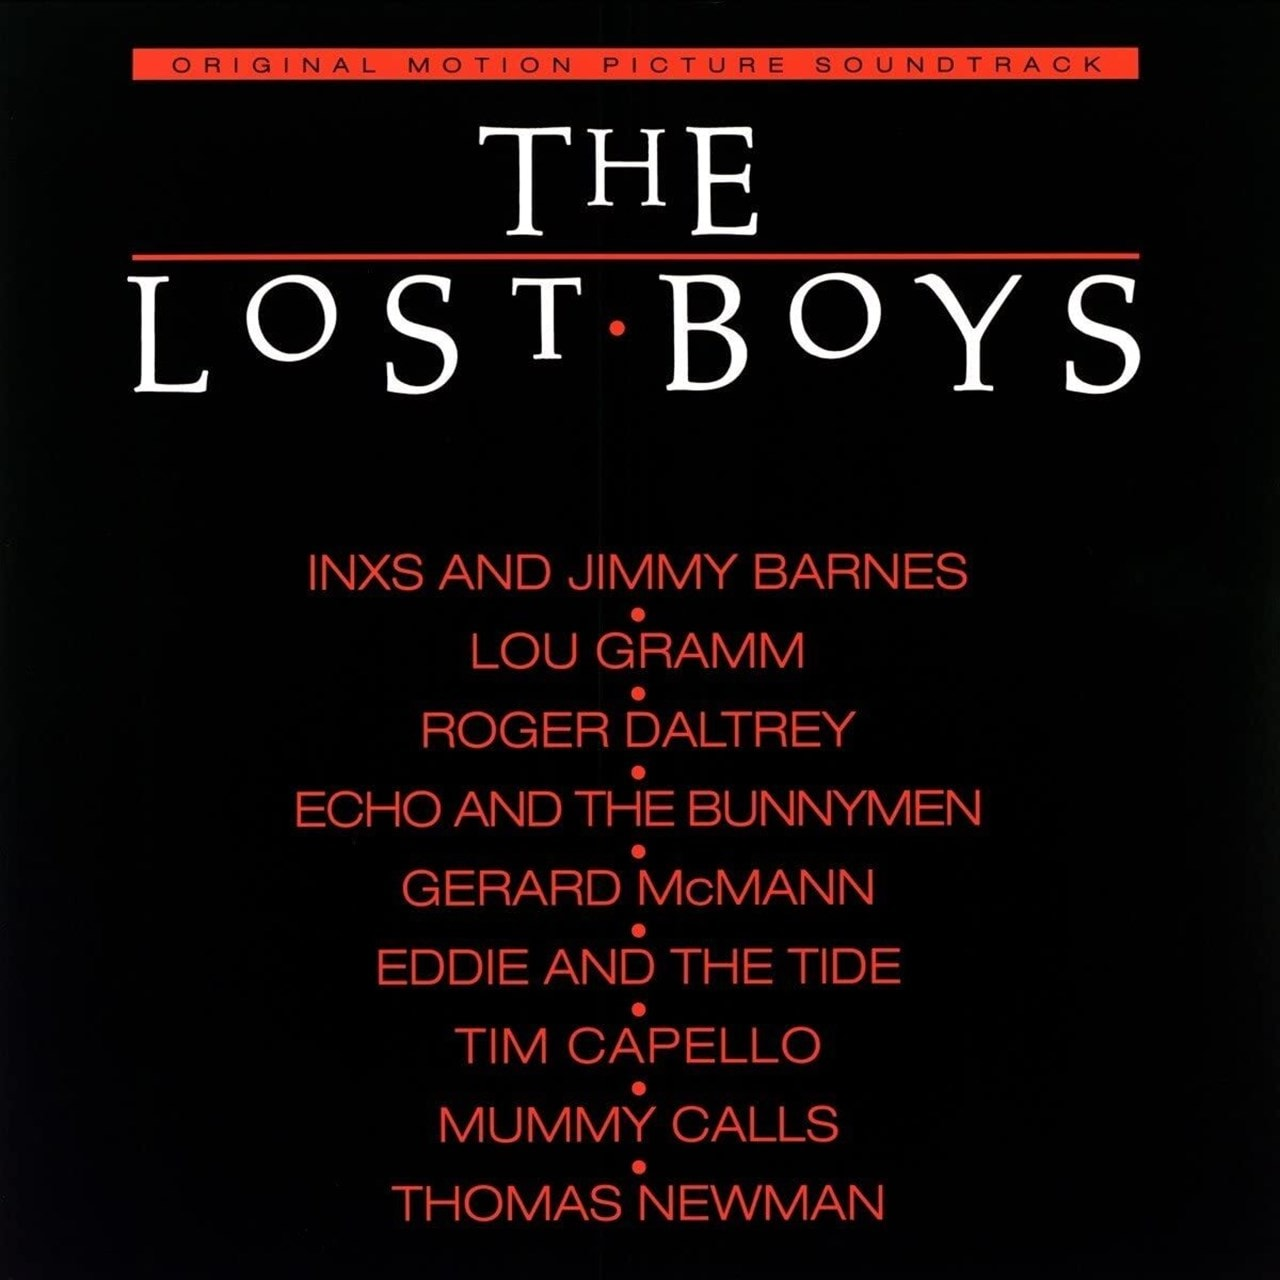 The Lost Boys - Limited Edition Red Vinyl - 1